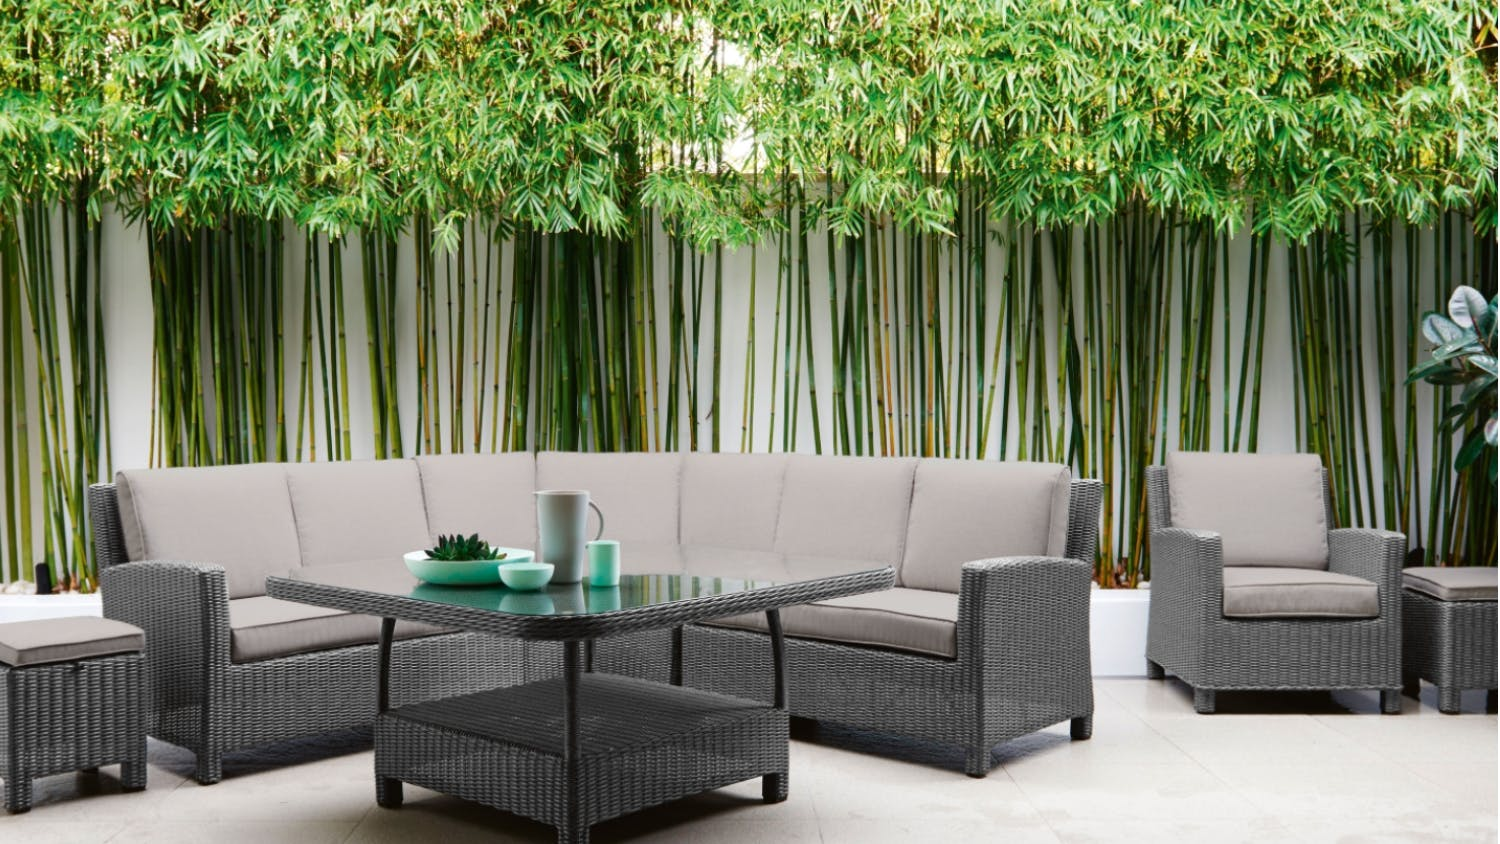 dundee 7 piece outdoor modular lounge package alexandria balcony set high quality patio furniture